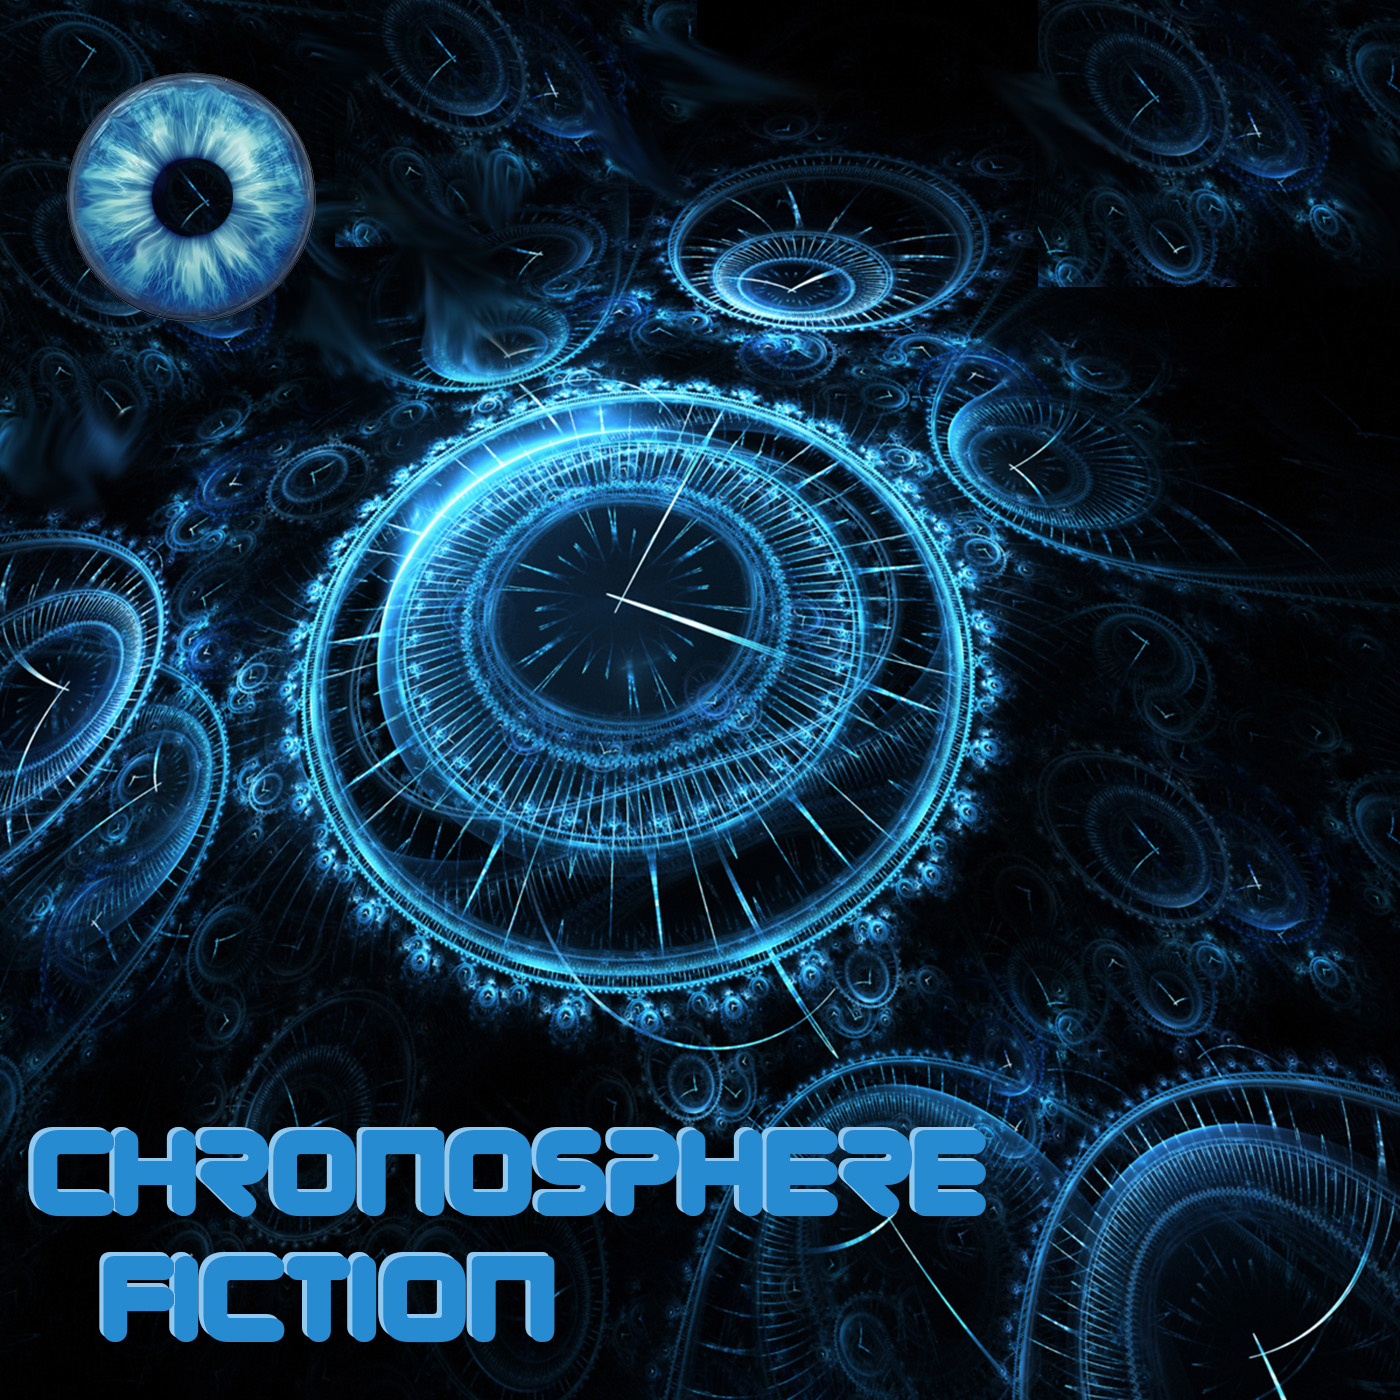 Chronosphere Fiction Podcast